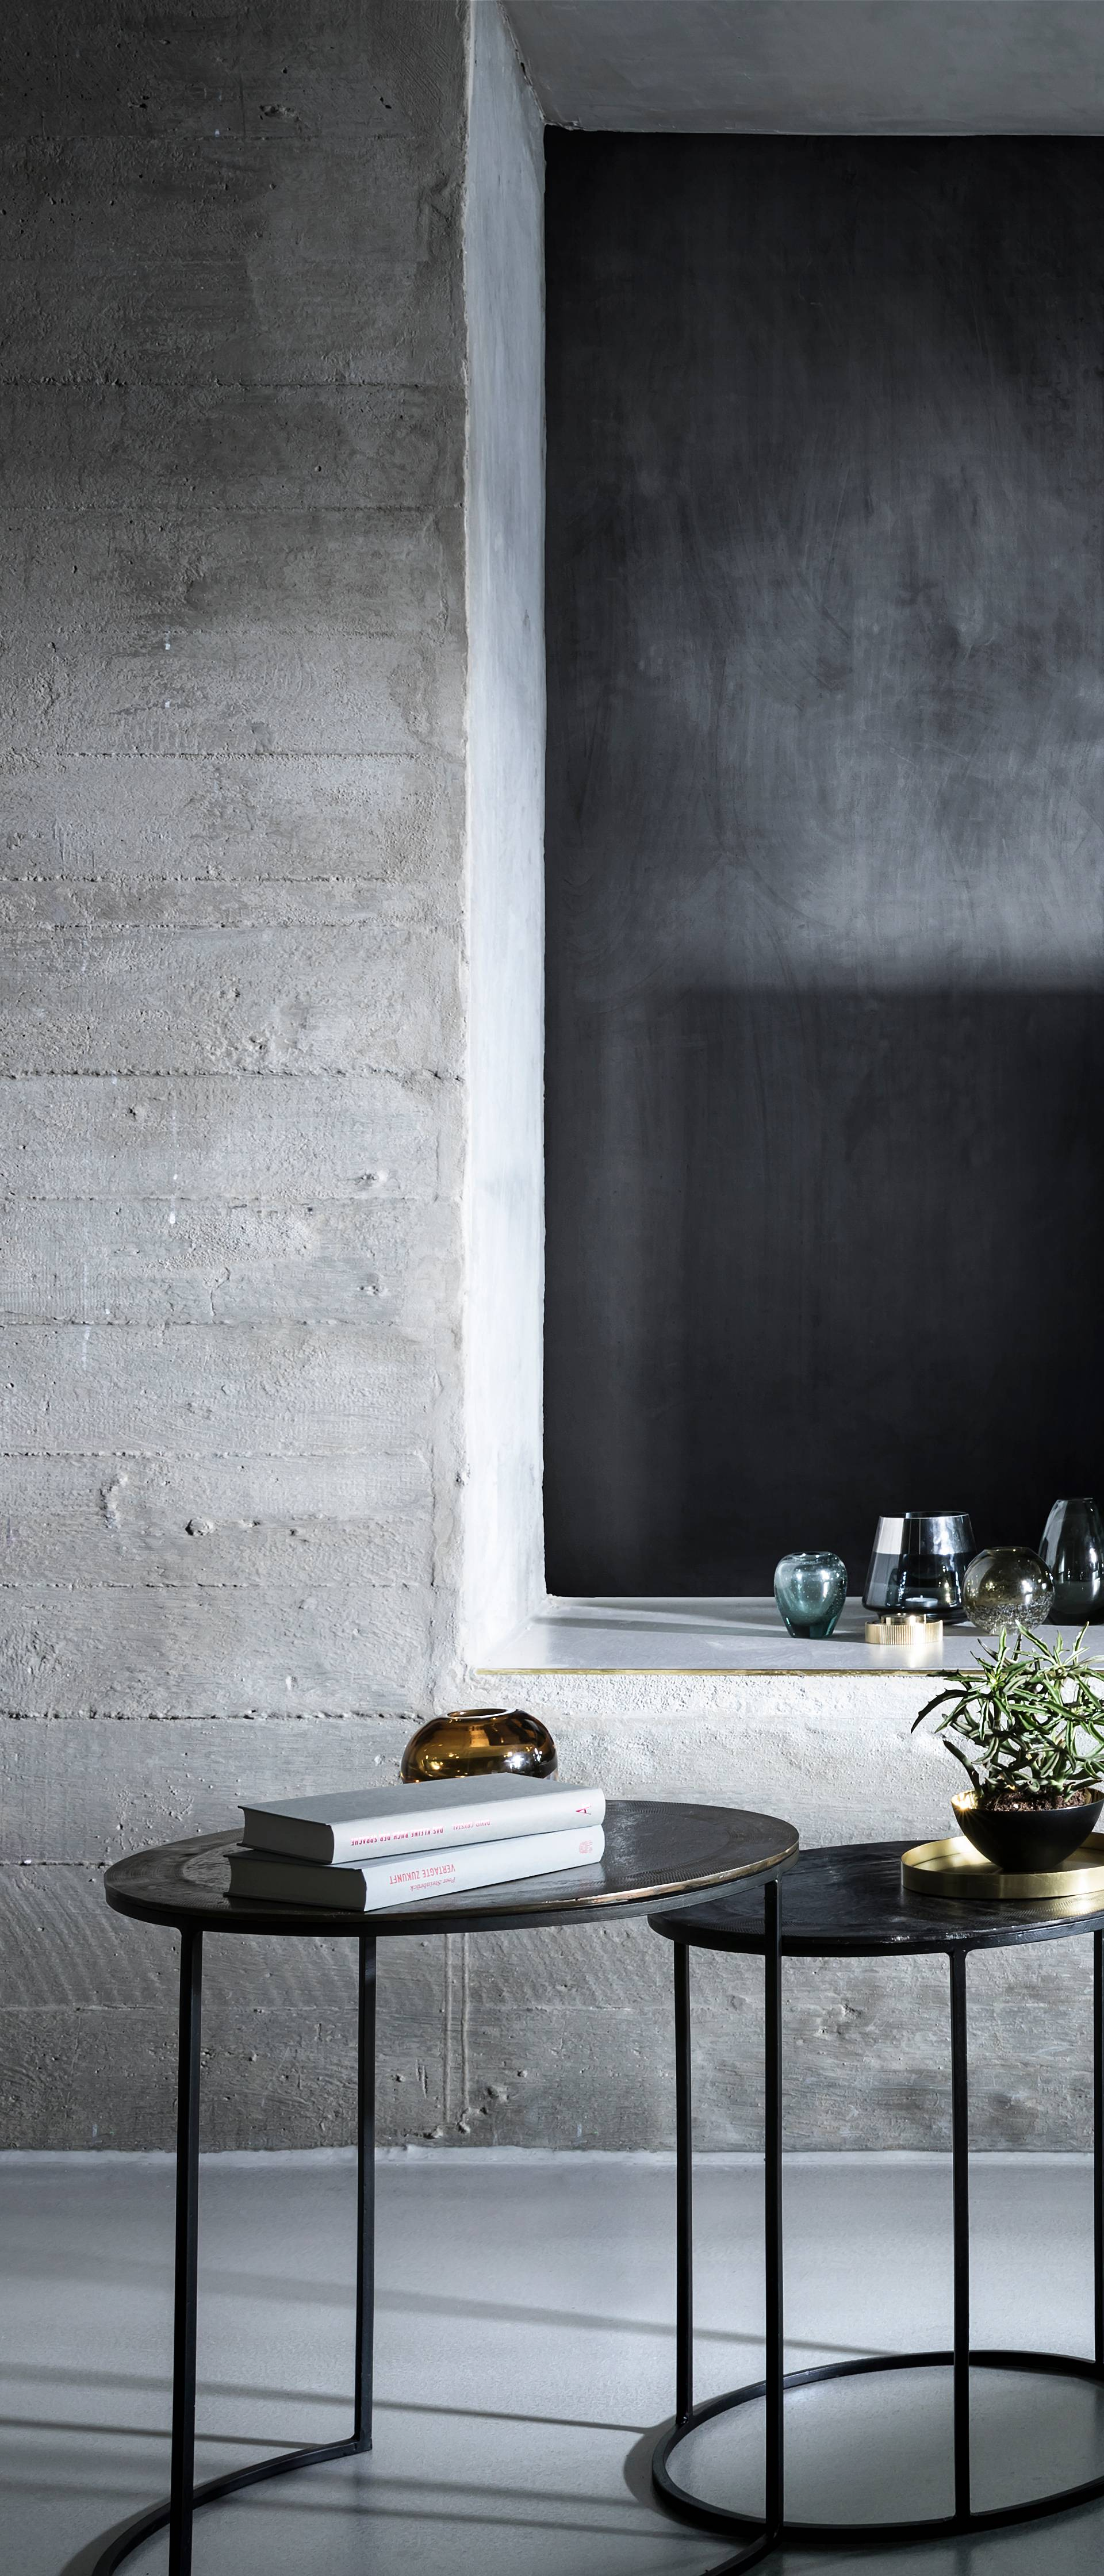 Panasonicovi modeli 4K LED TV-a za 2018. godinu